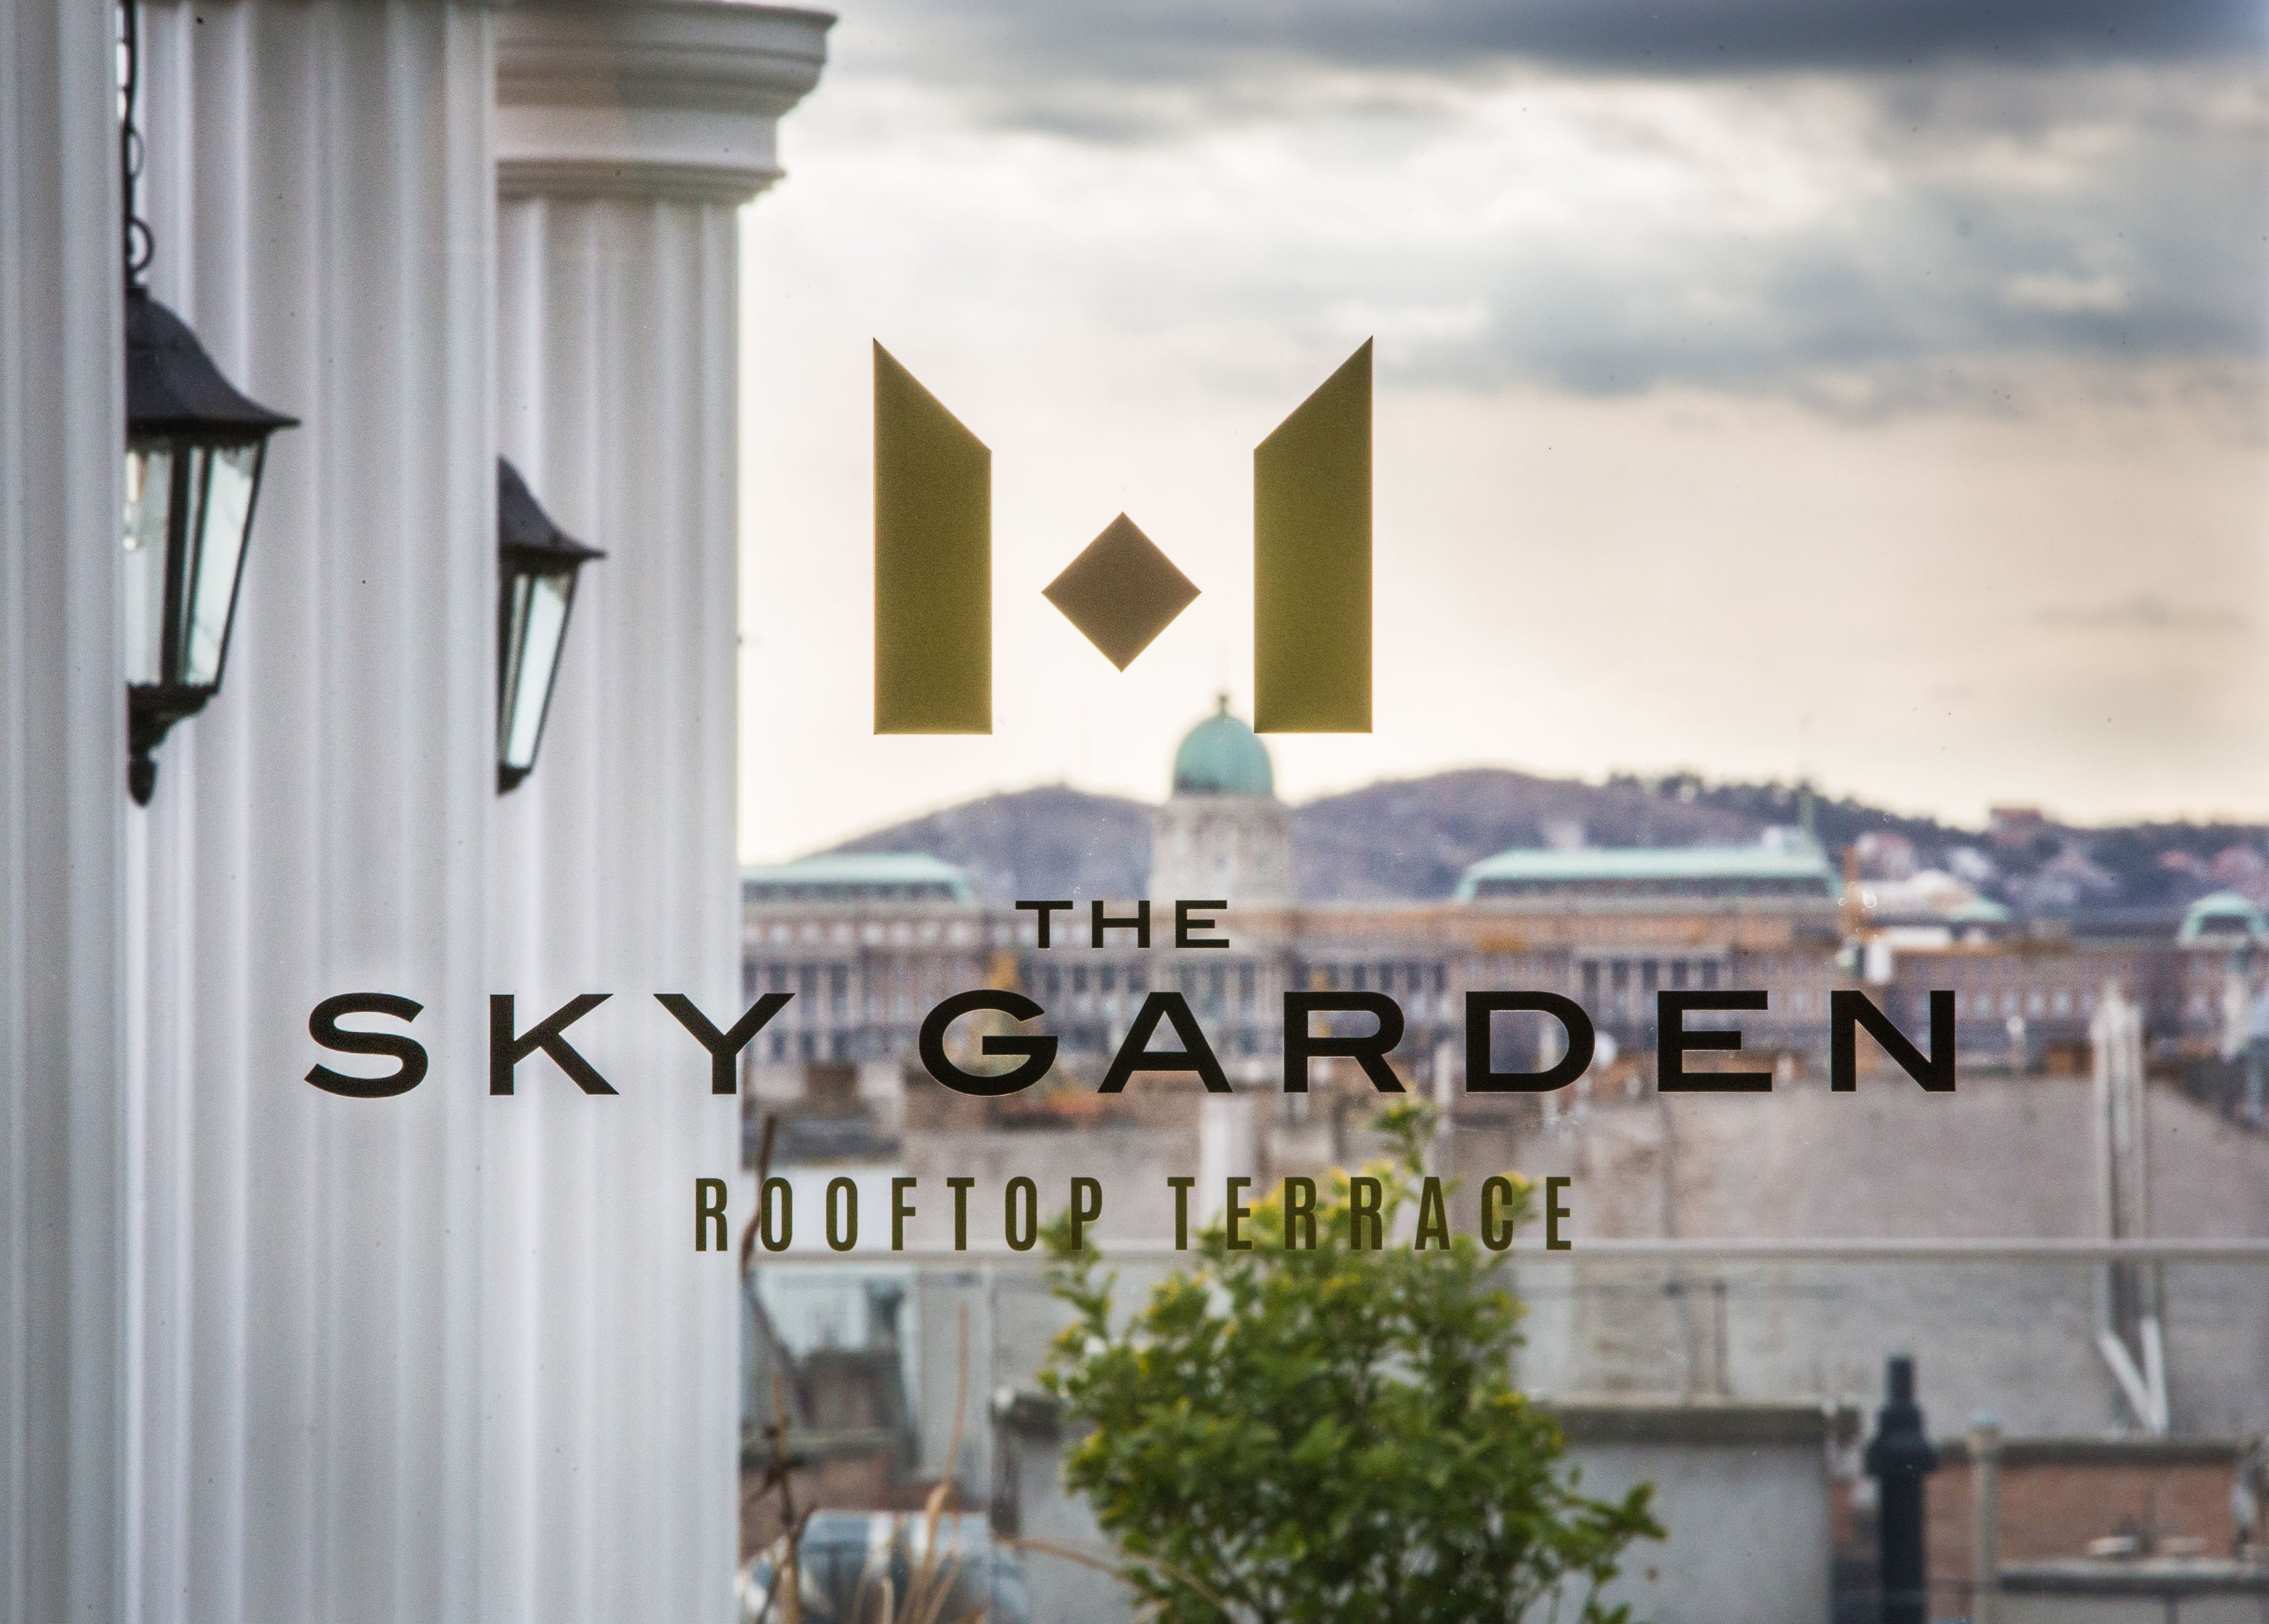 Mystery_Hotel_Budapest_The_Sky_Garden_Rooftop_Terrace